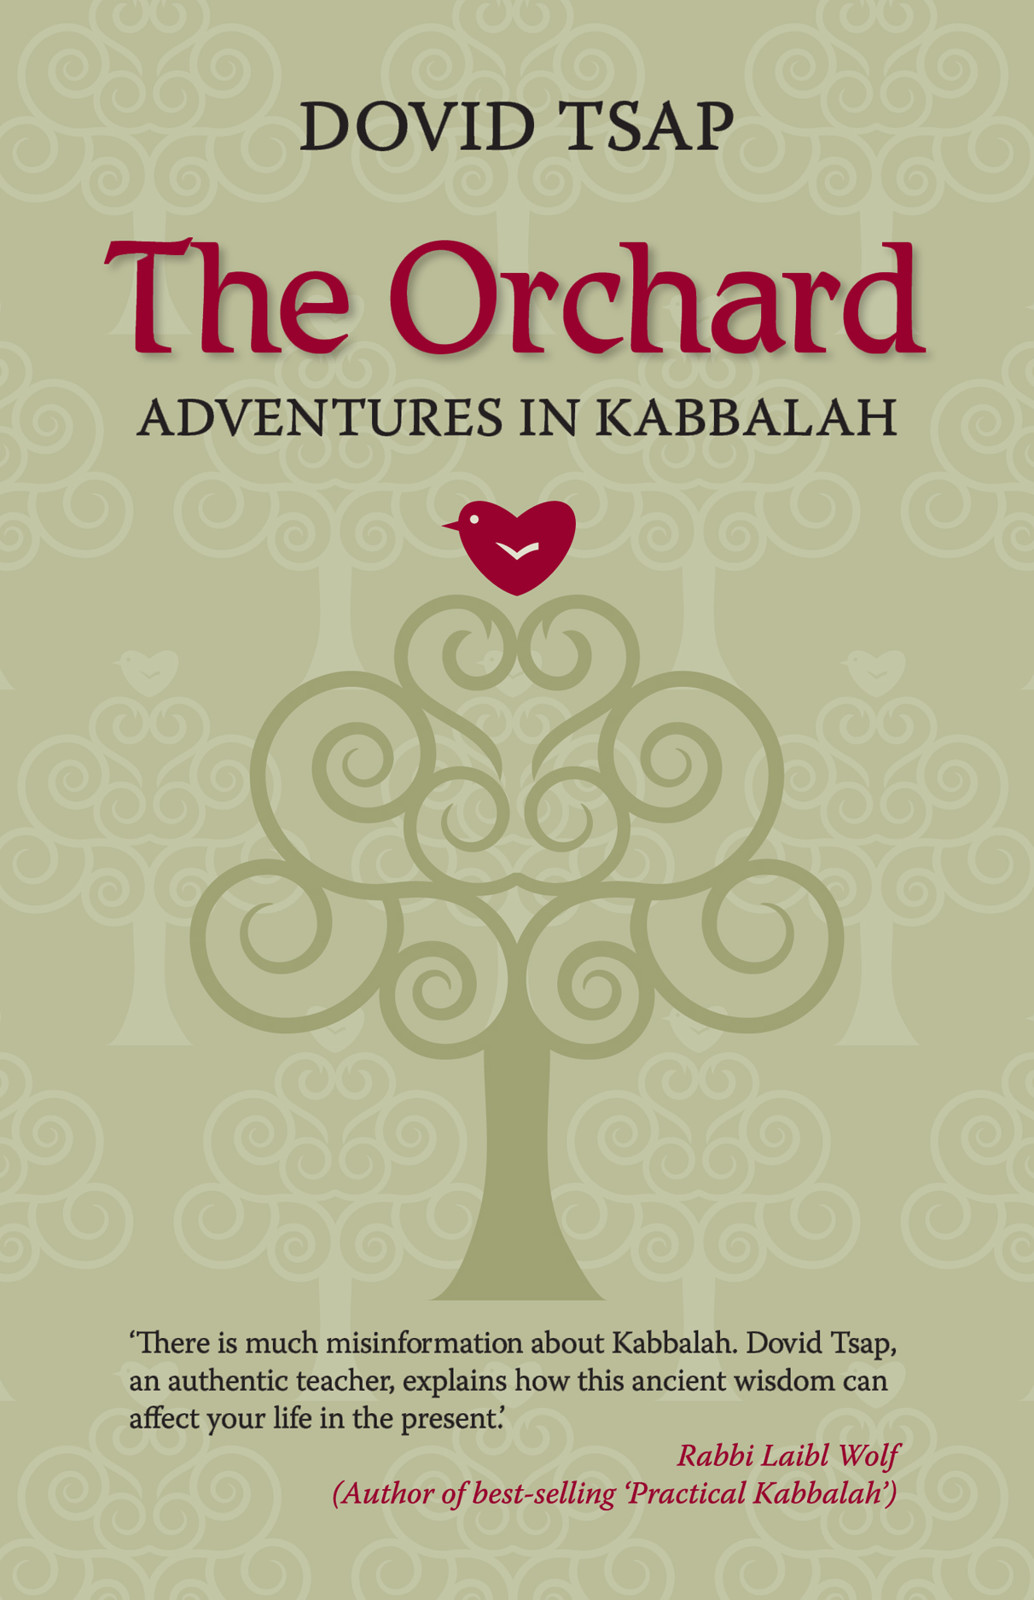 The Orchard: Adventures in Kabbalah